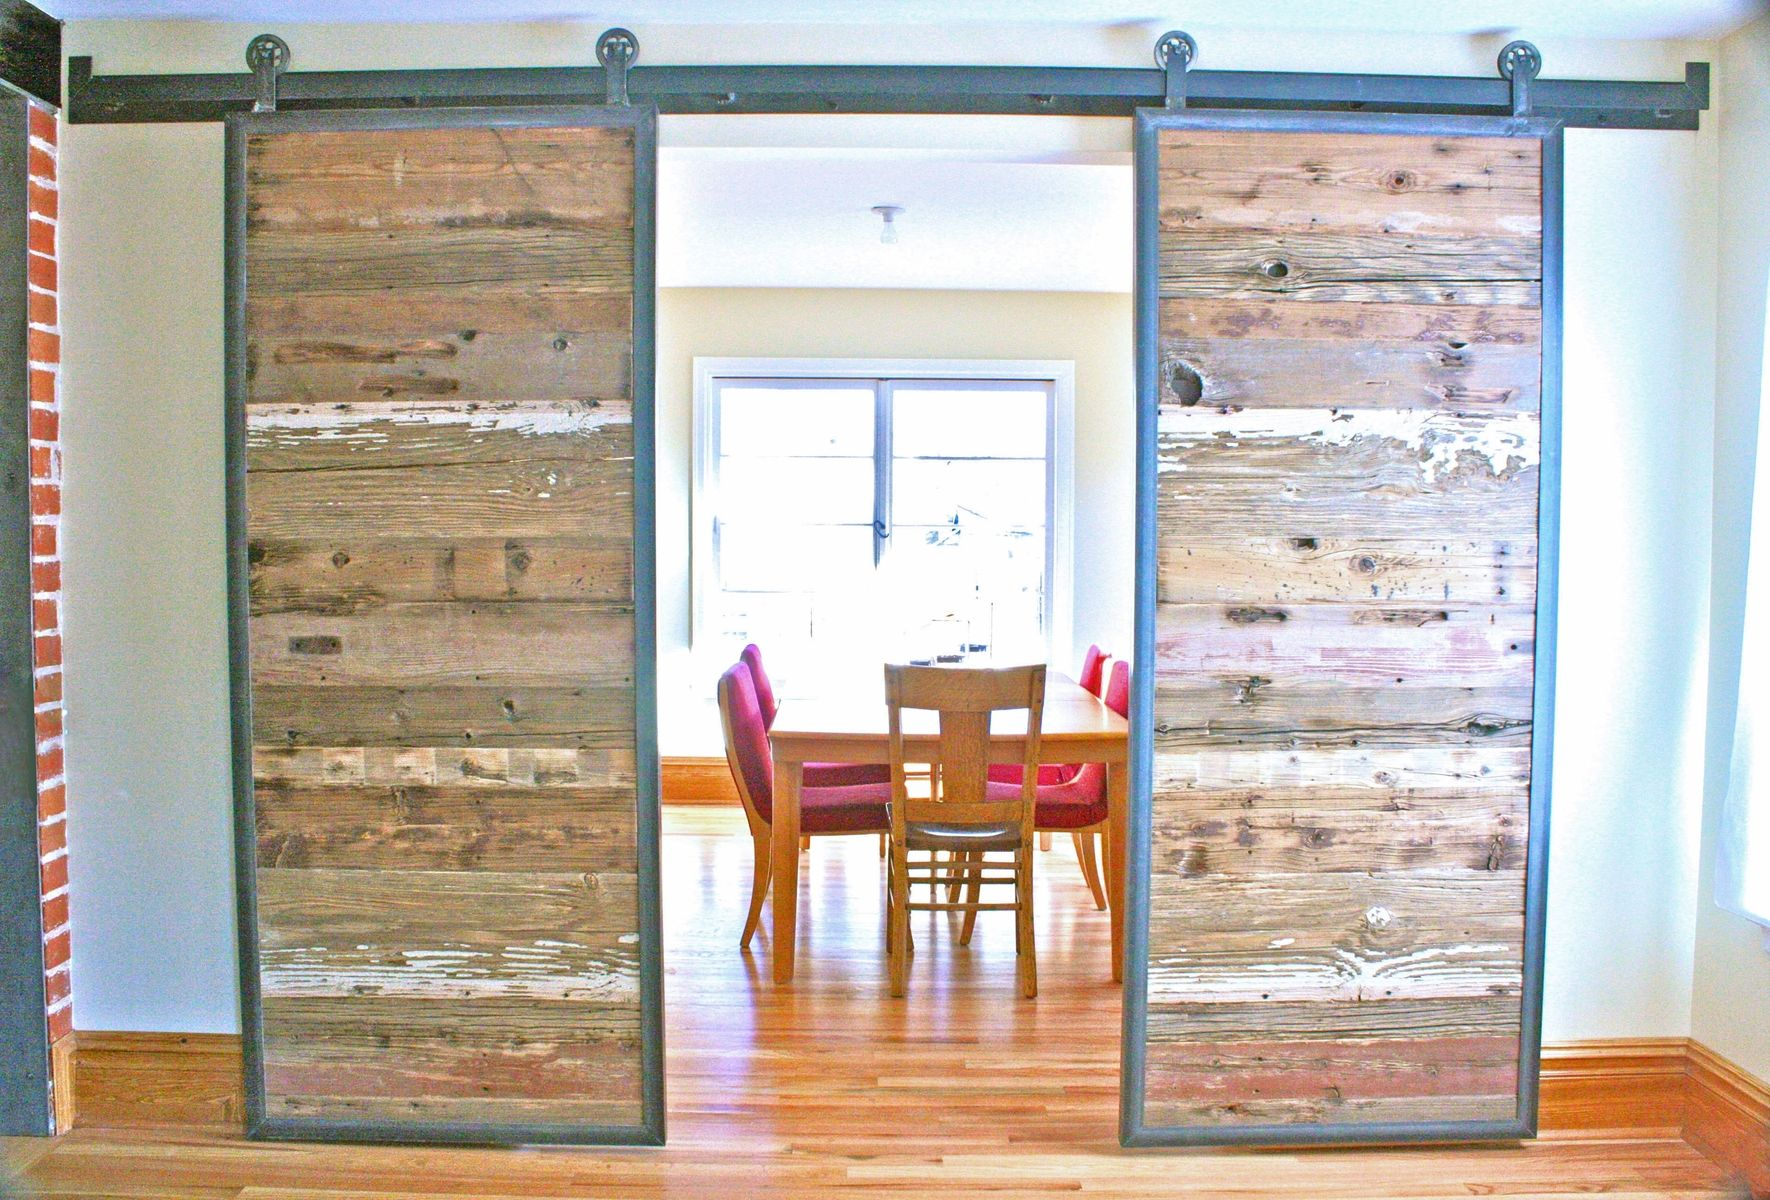 1200 #9B5C30 Handmade Industrial Reclaimed Barn Doors On Steel Track By Dancing  save image Custom Made Steel Doors 46671770